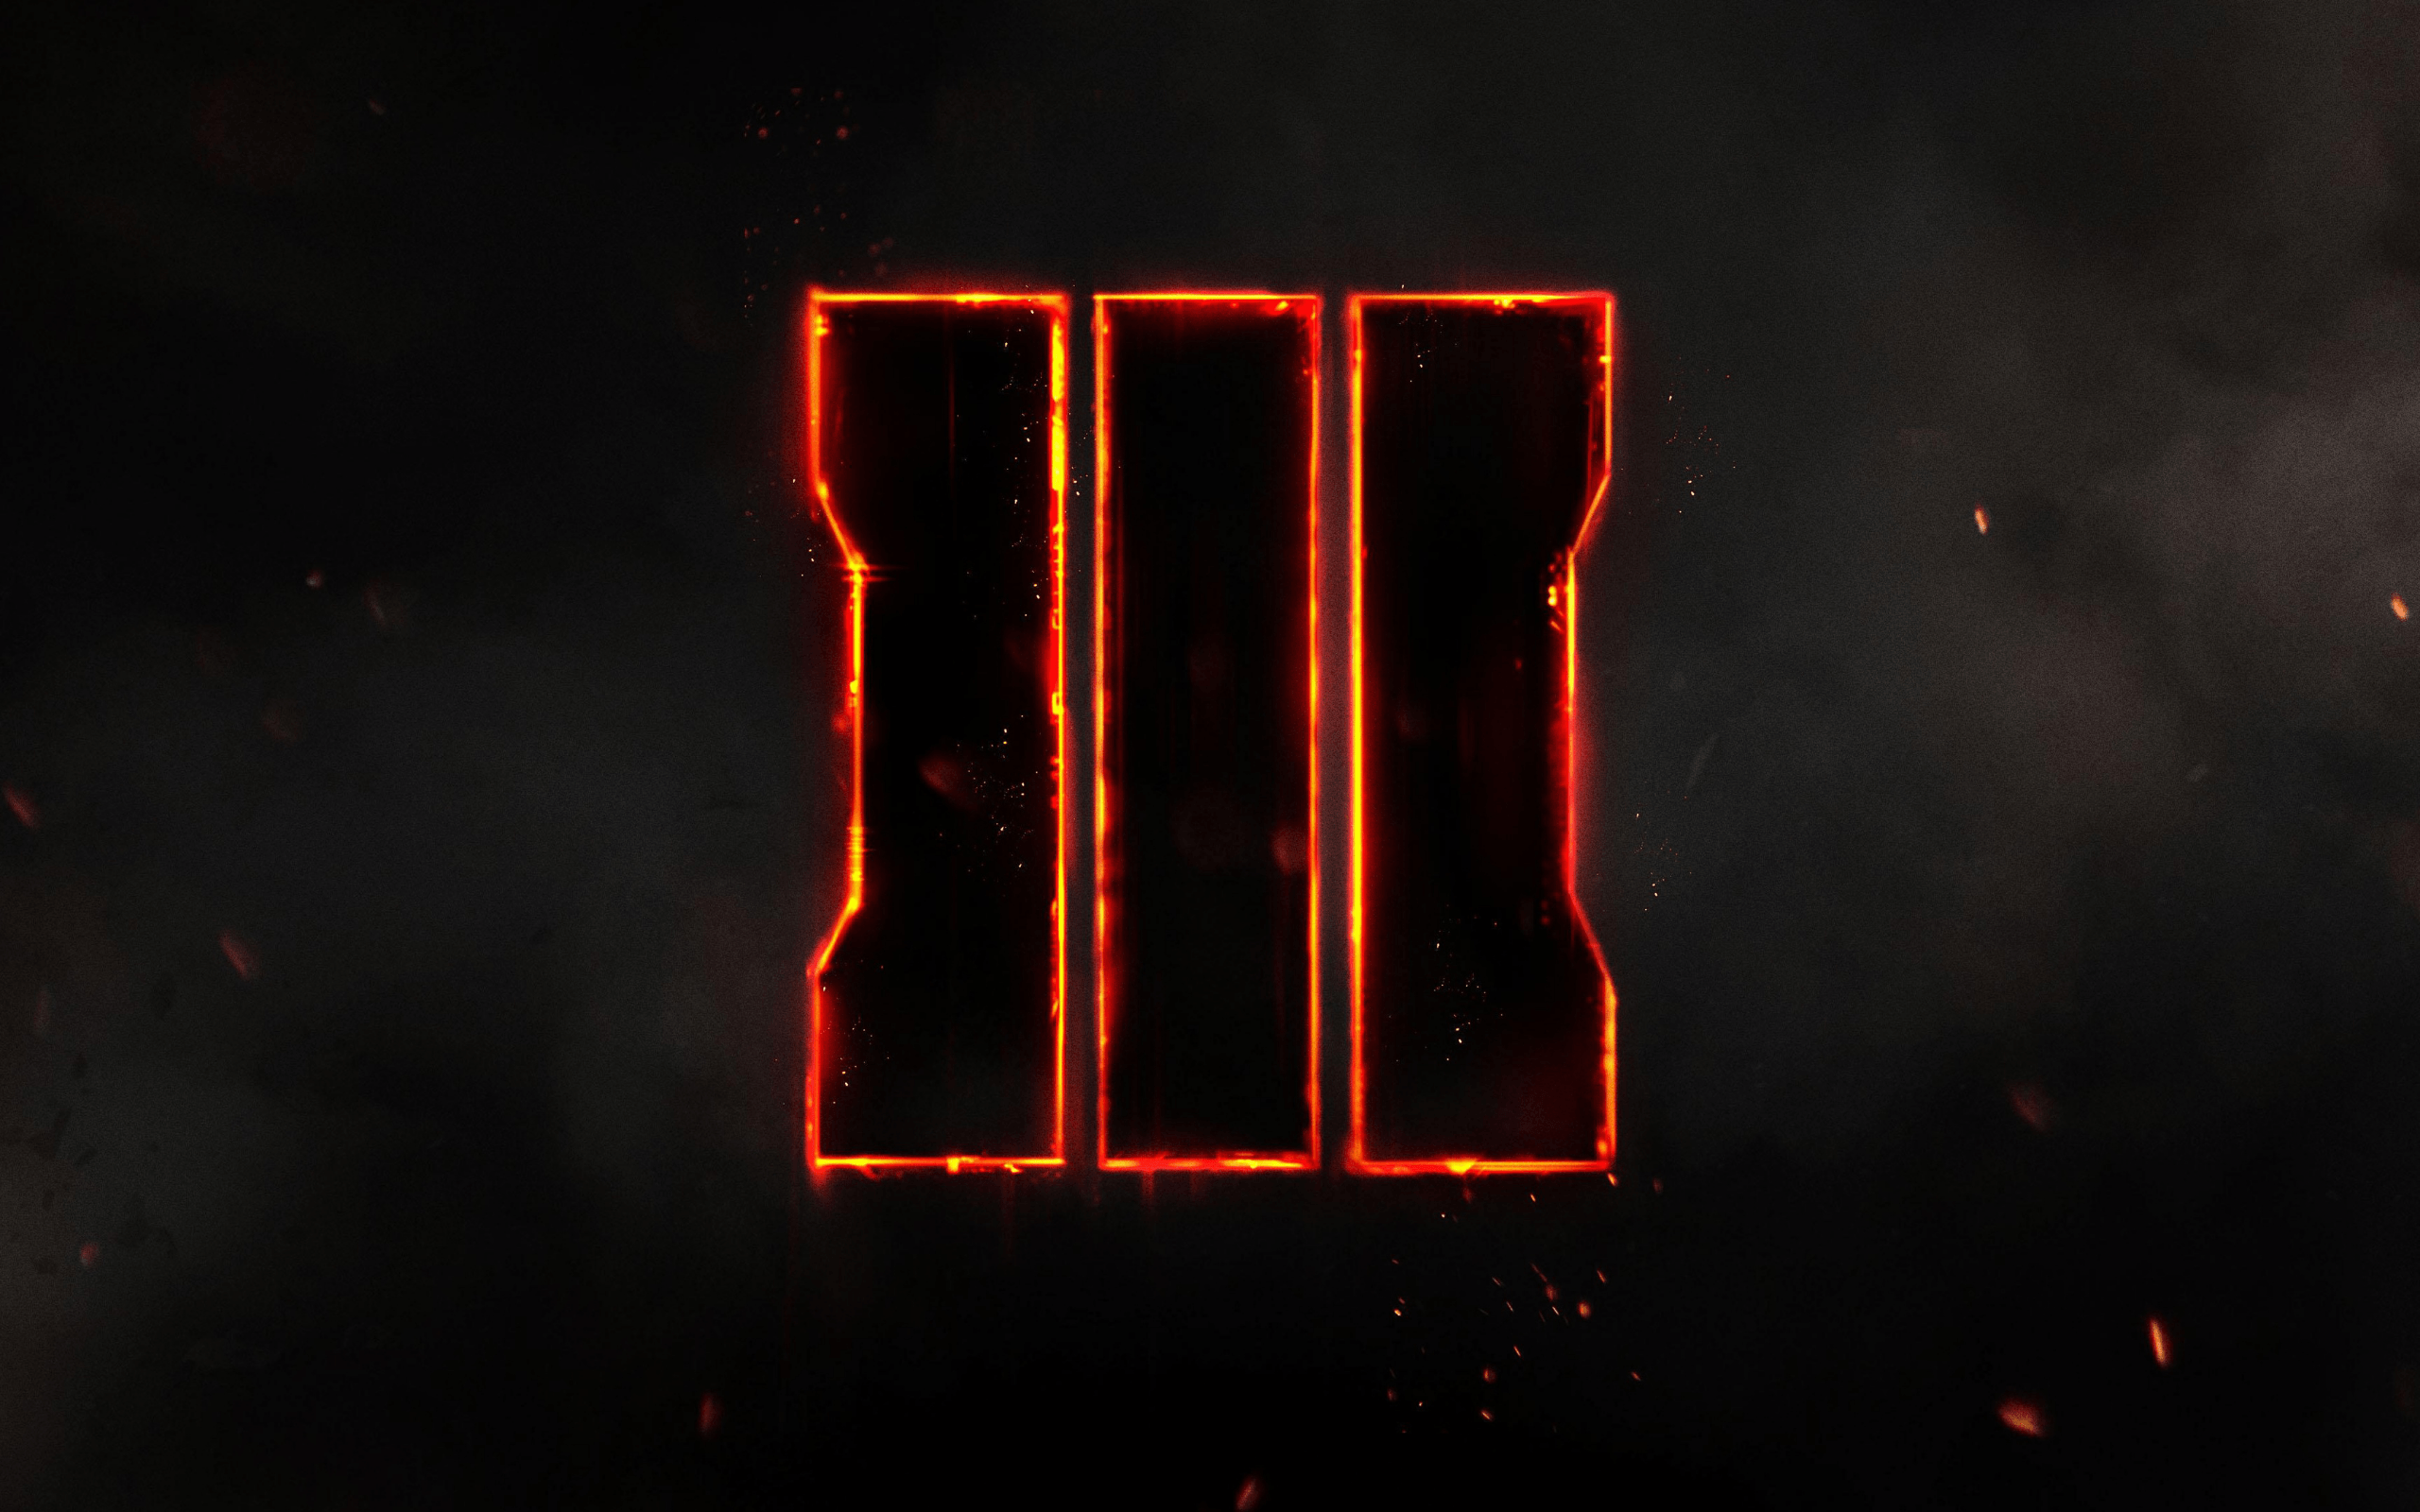 40 Call Of Duty: Black Ops III HD Wallpapers | Backgrounds ...